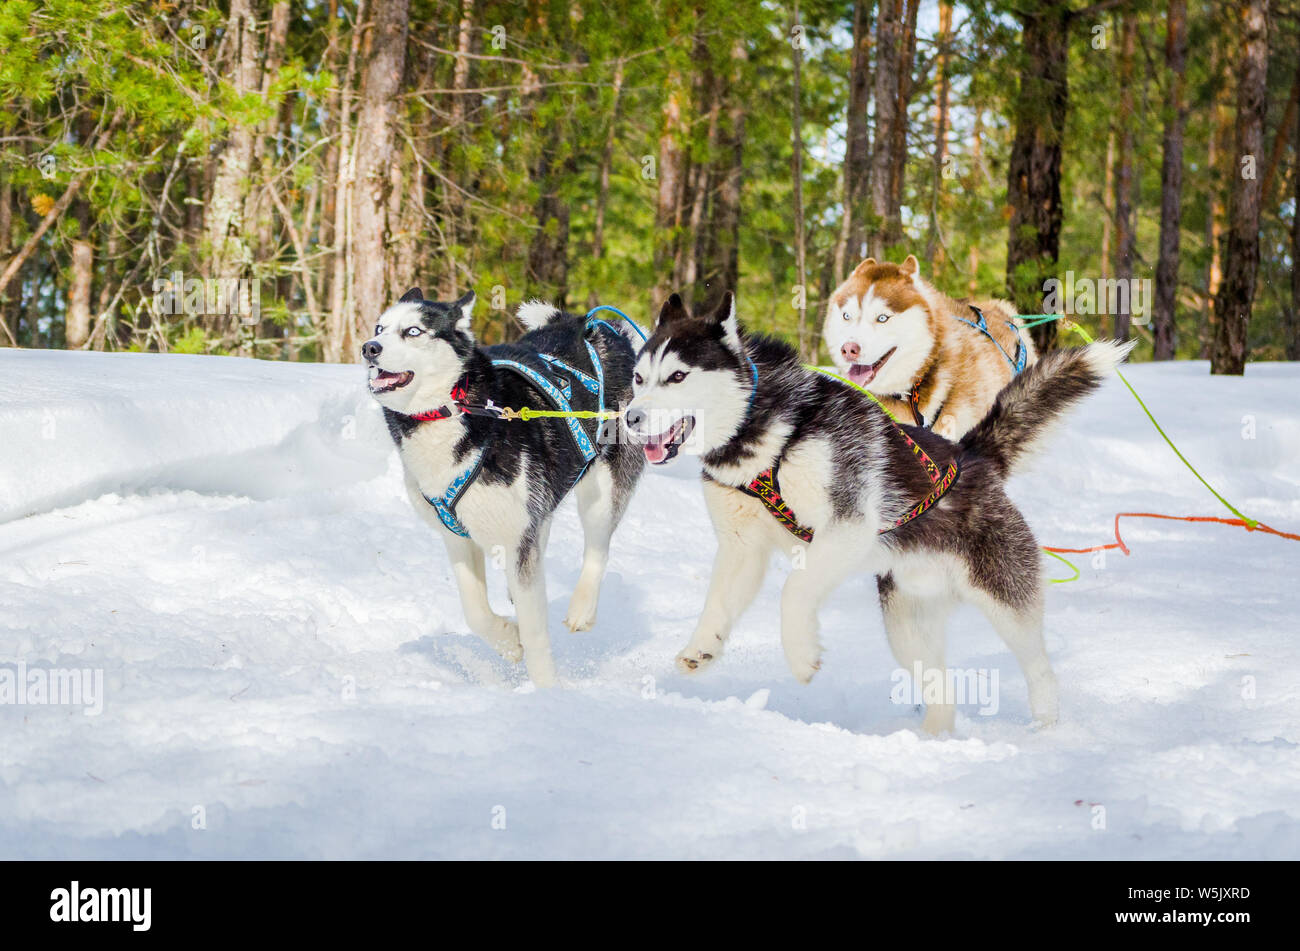 Three Siberian Husky sled dogs in harness rushing in the